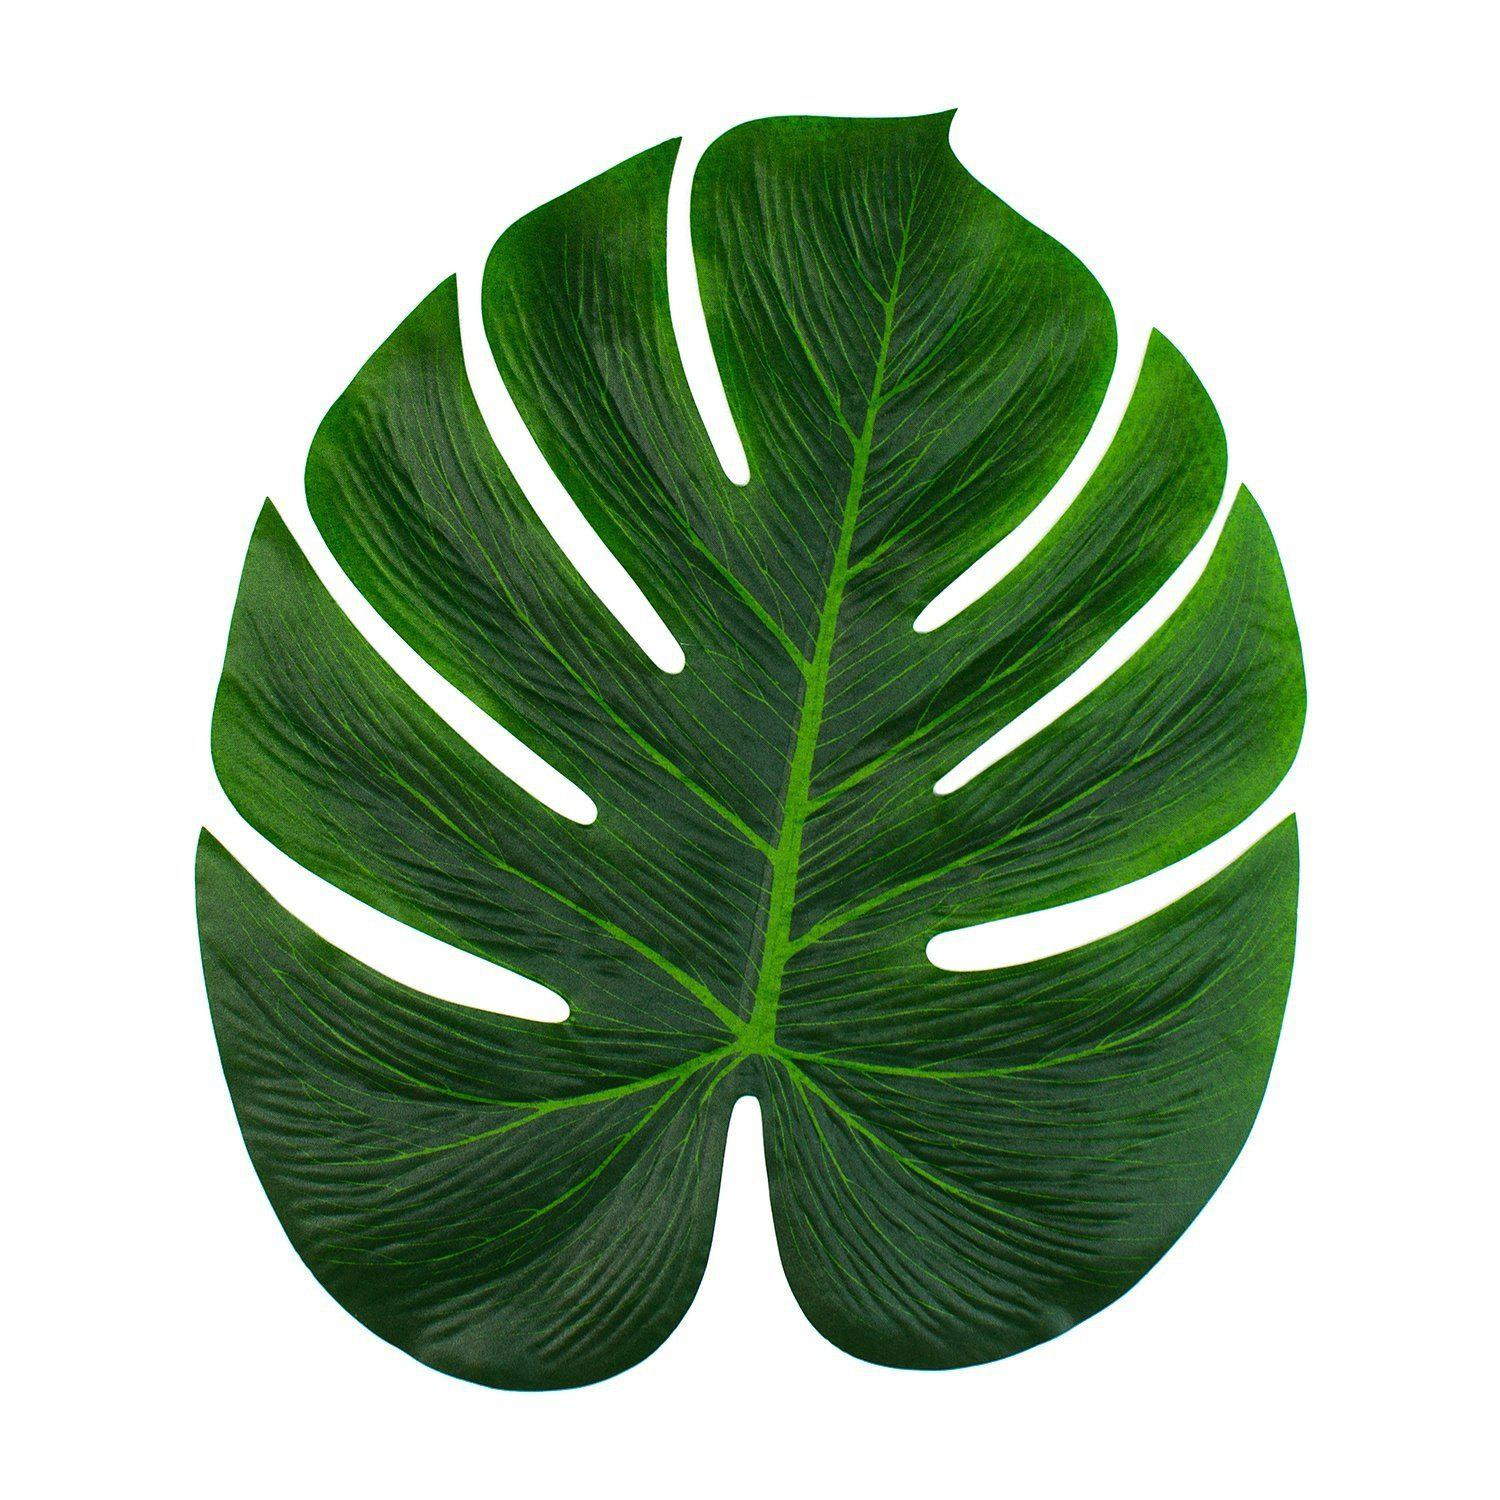 Sale 9pcs Tropical Palm Leaves 13-Inch Simulation Leaf for Hawaiian Luau Party Jungle Beach Theme Party Decorations